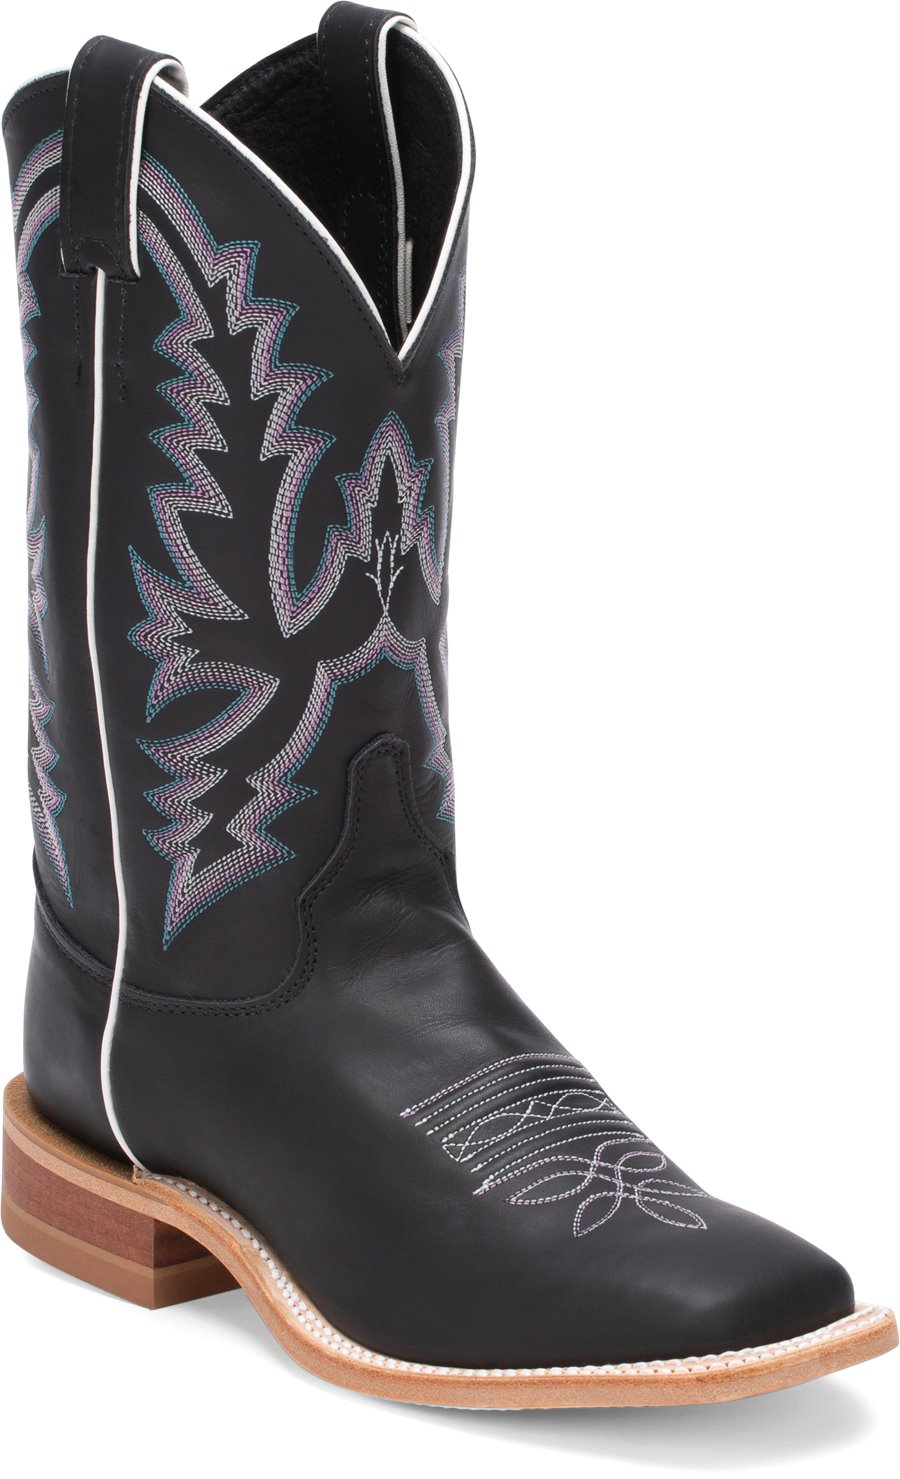 Justin Boot Women's Shoes - Kenedy in Black